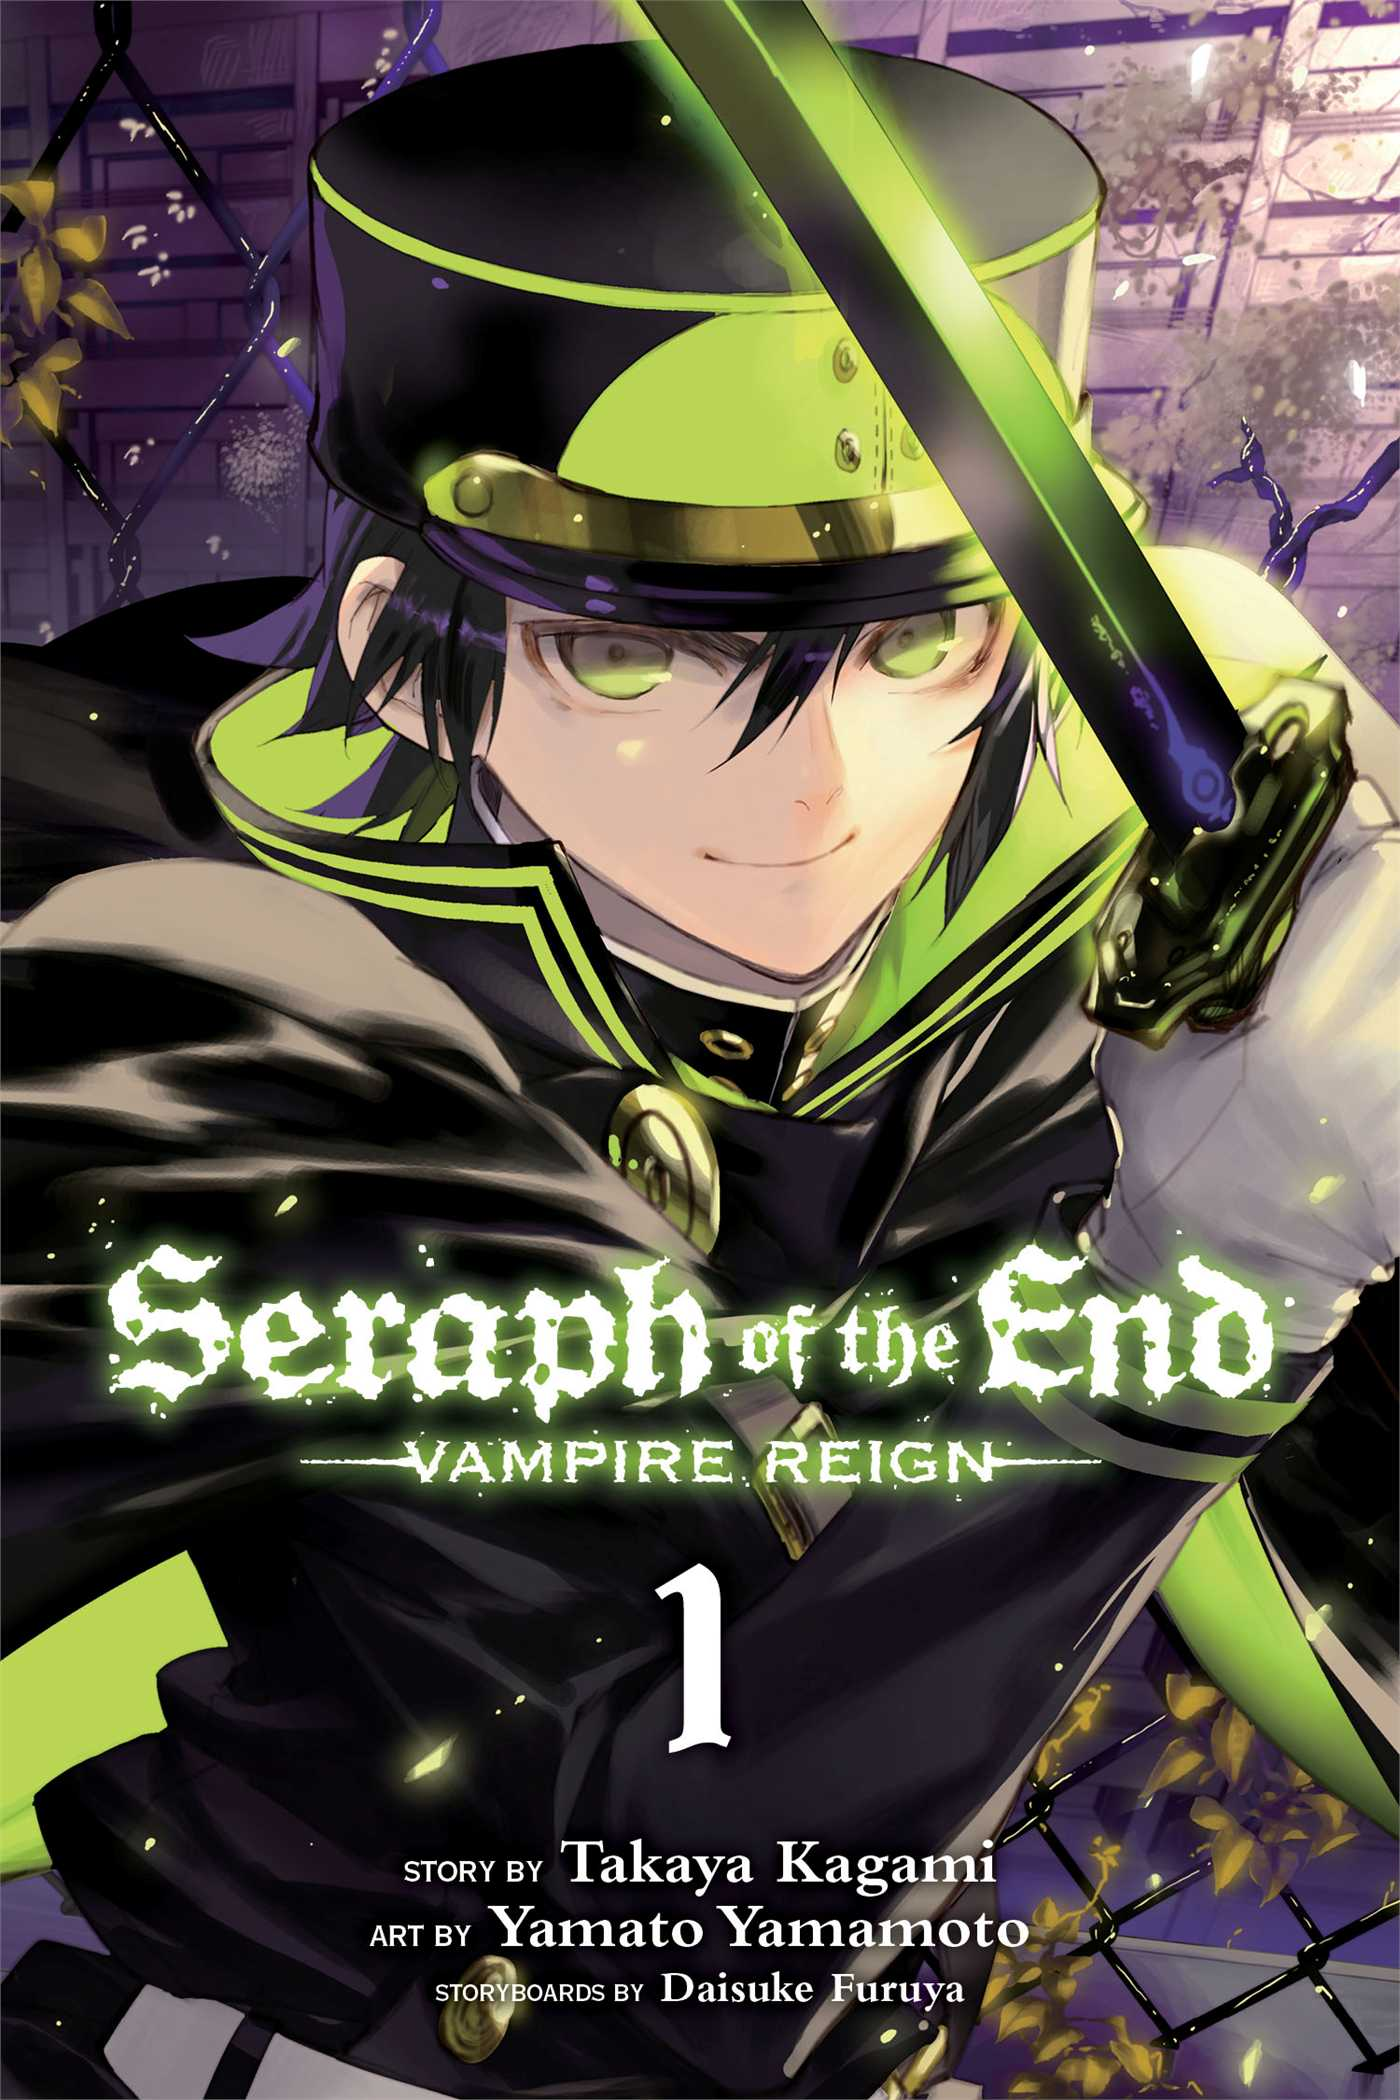 Seraph of the end vol 1 9781421571508 hr